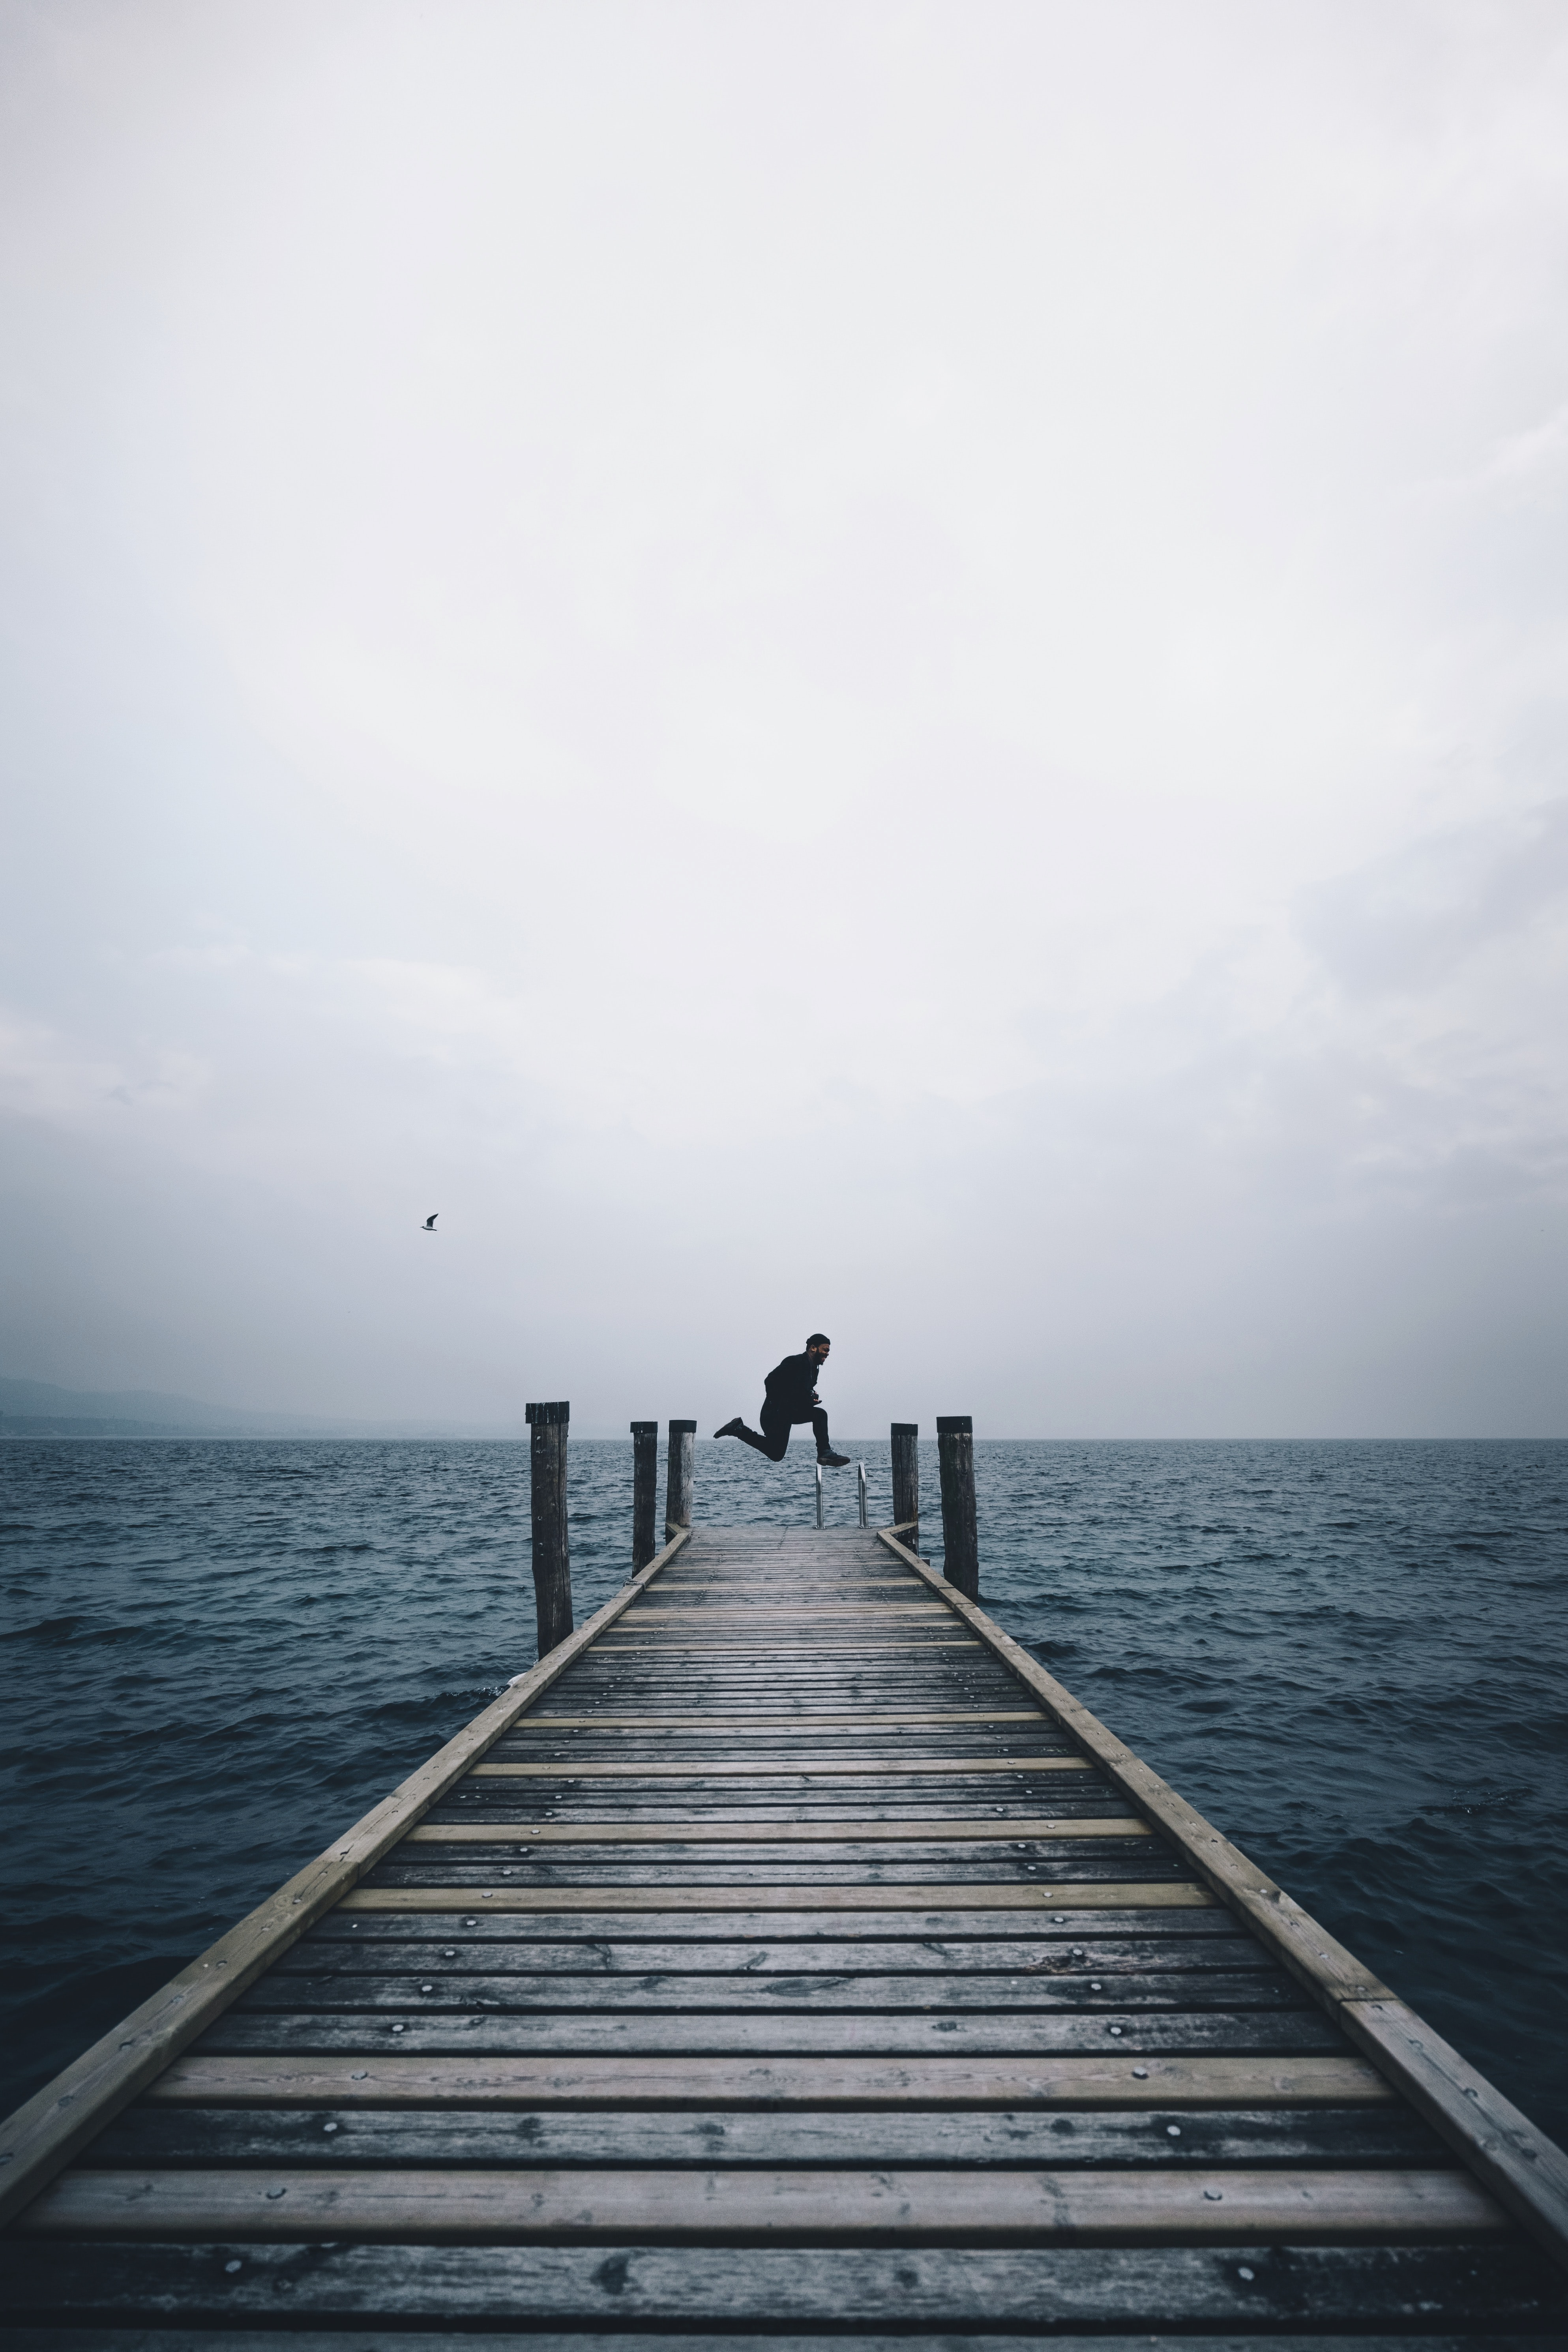 A person jumping in the air on the edge of a dock by a lake in Punta Saint Vigilio on a cloudy day